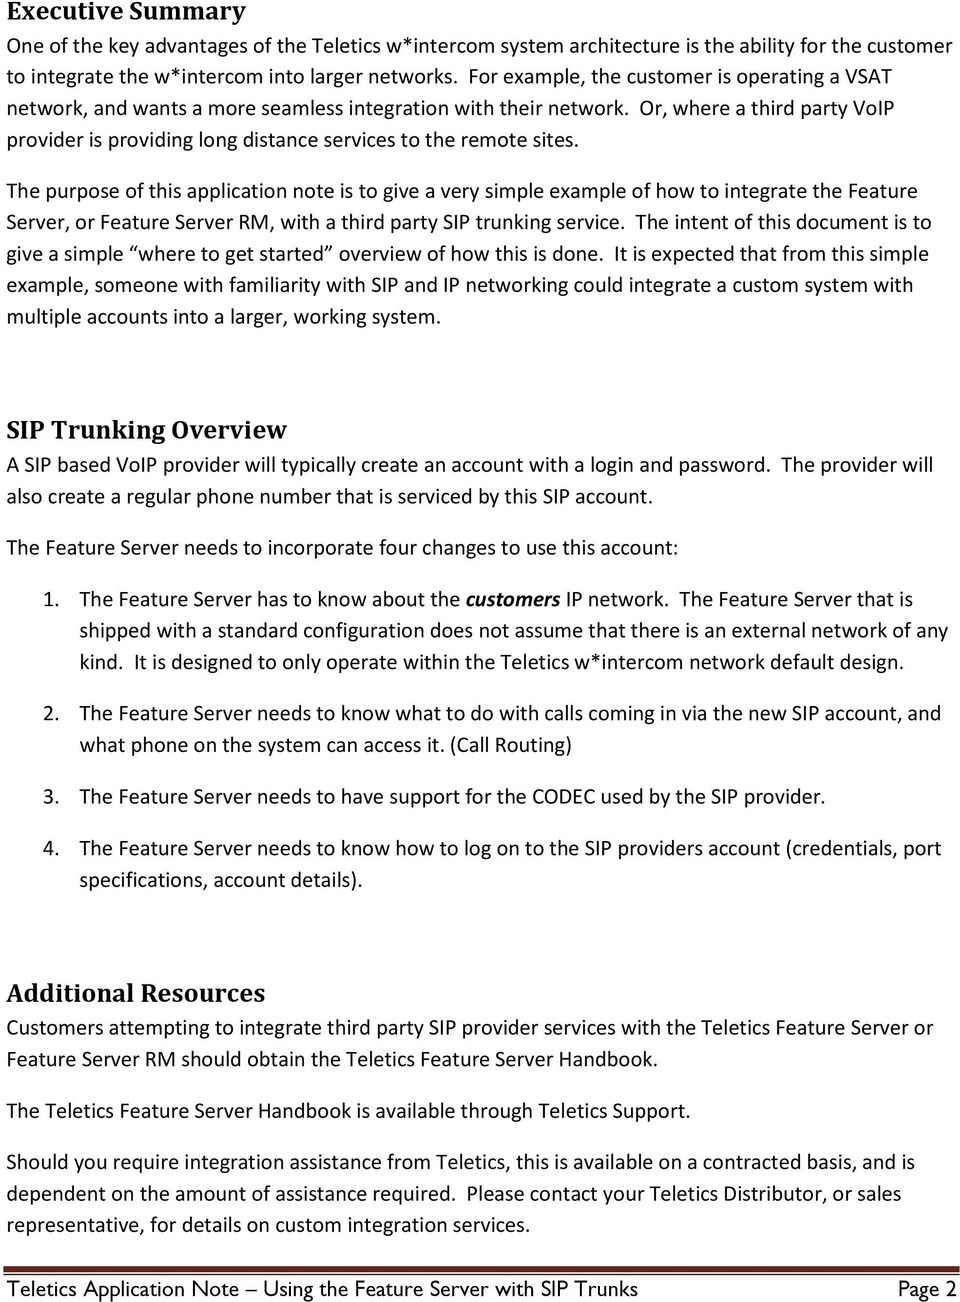 Teletics Application Note  Using the Feature Server with SIP